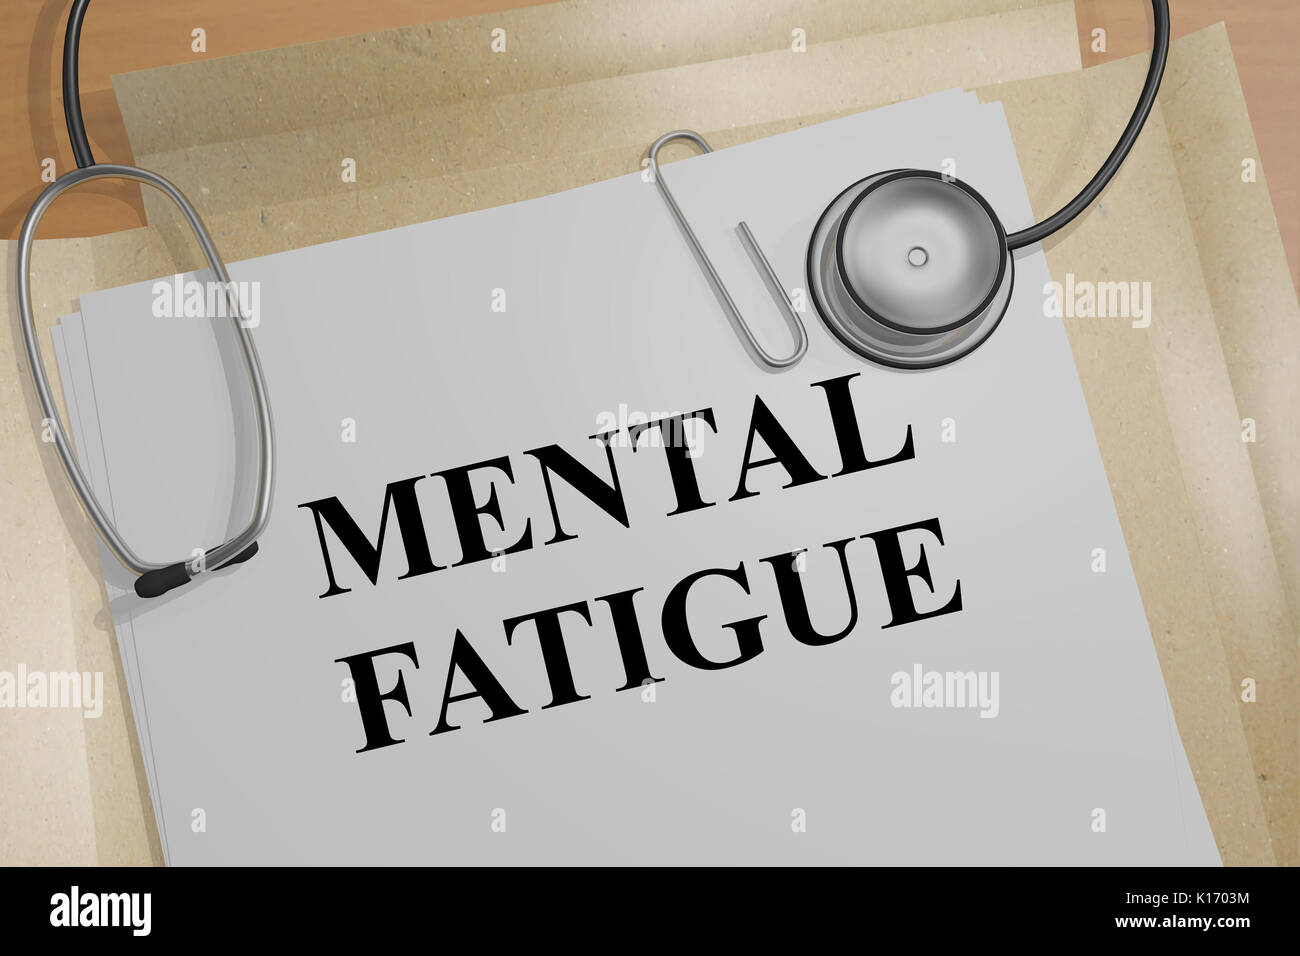 3D illustration of 'MENTAL FATIGUE' title on a document - Stock Image